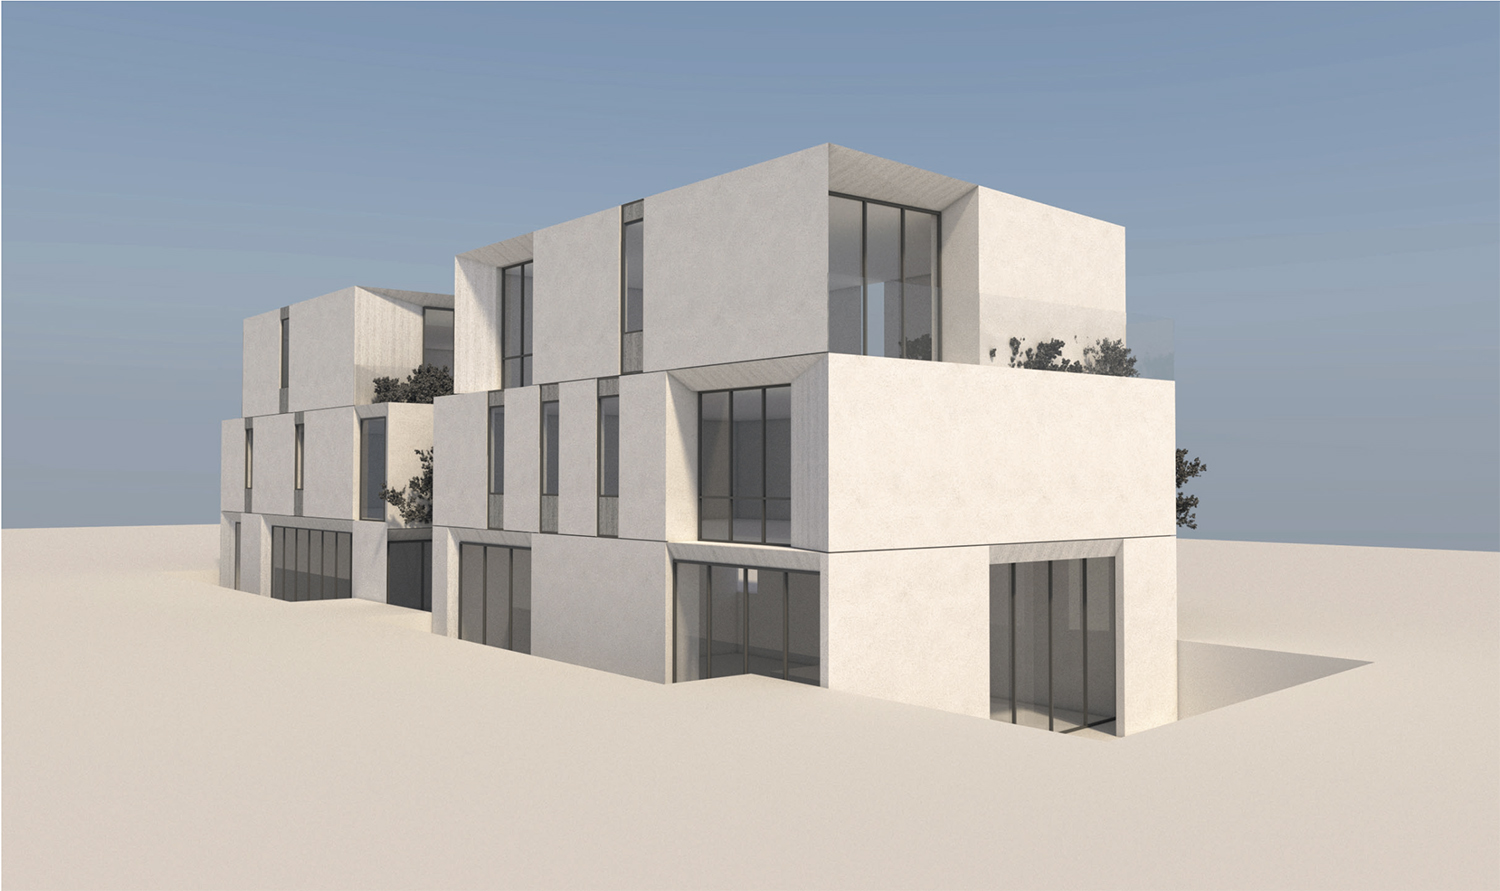 - 6TH AVE | VENICE BEACH | CALIFORNIA(2) 2800 SQ. FT | SINGLE FAMILY HOMEVIEW MORE